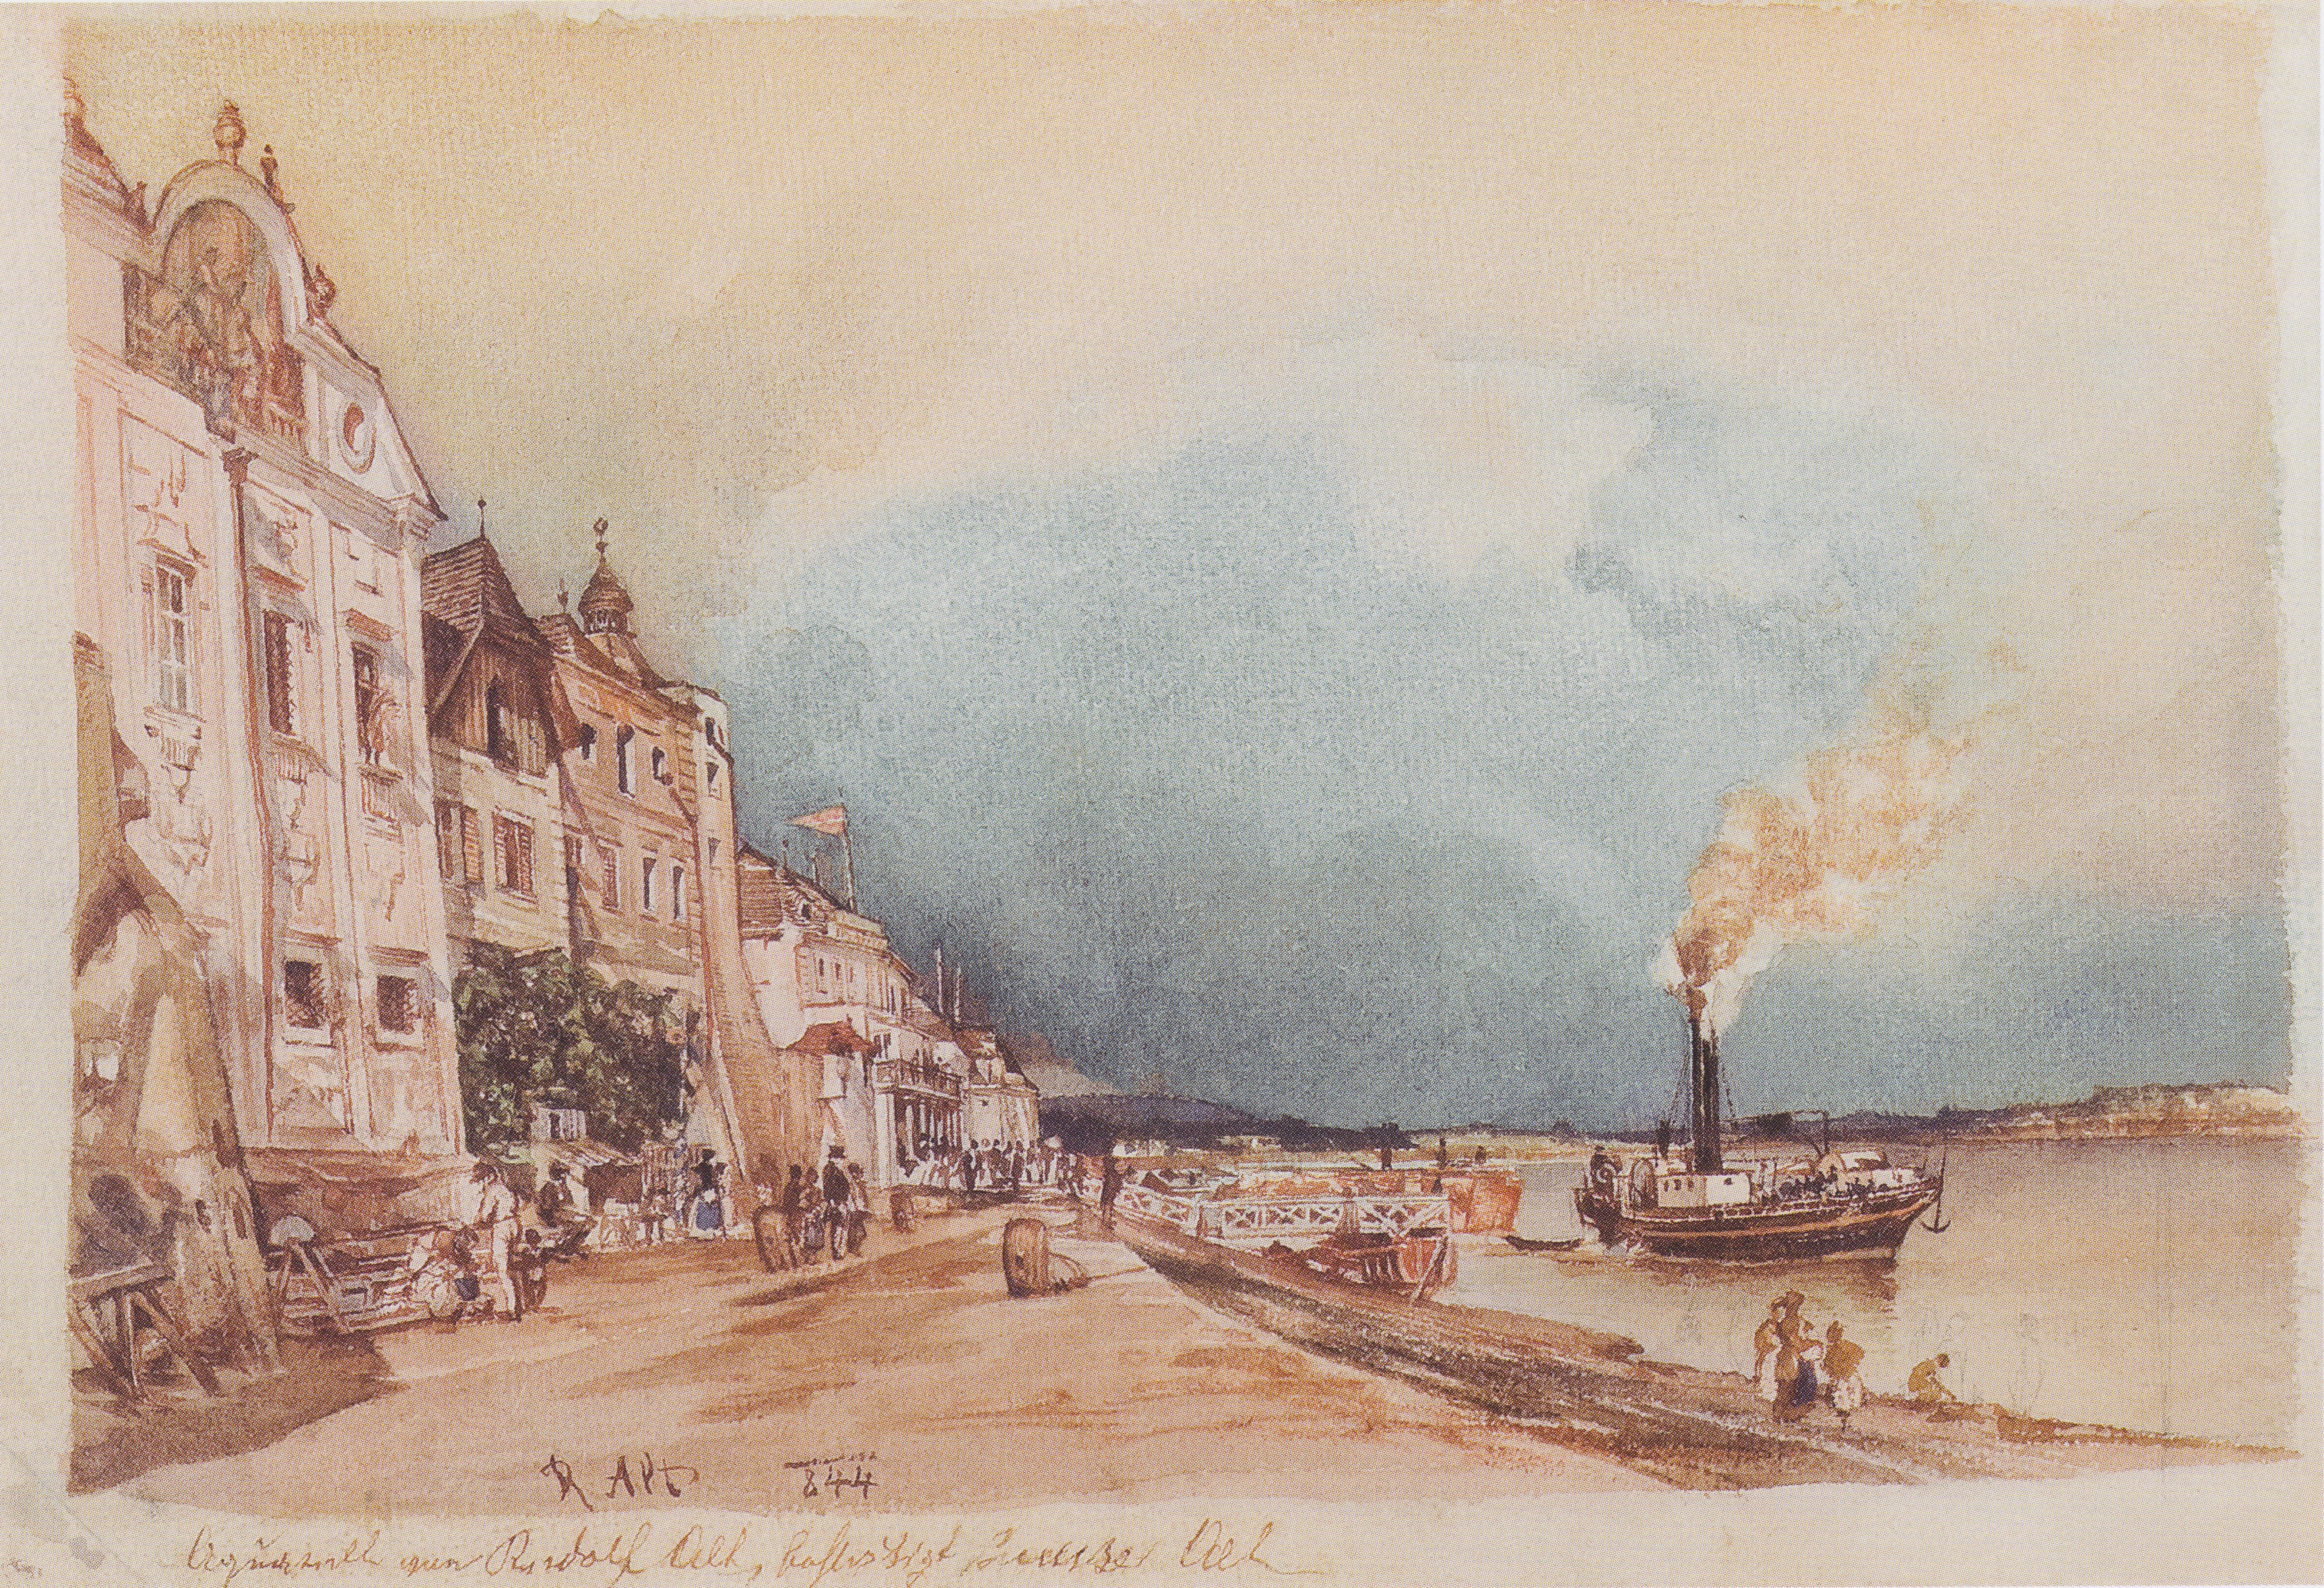 The landing site in Stein an der Donau, 1844